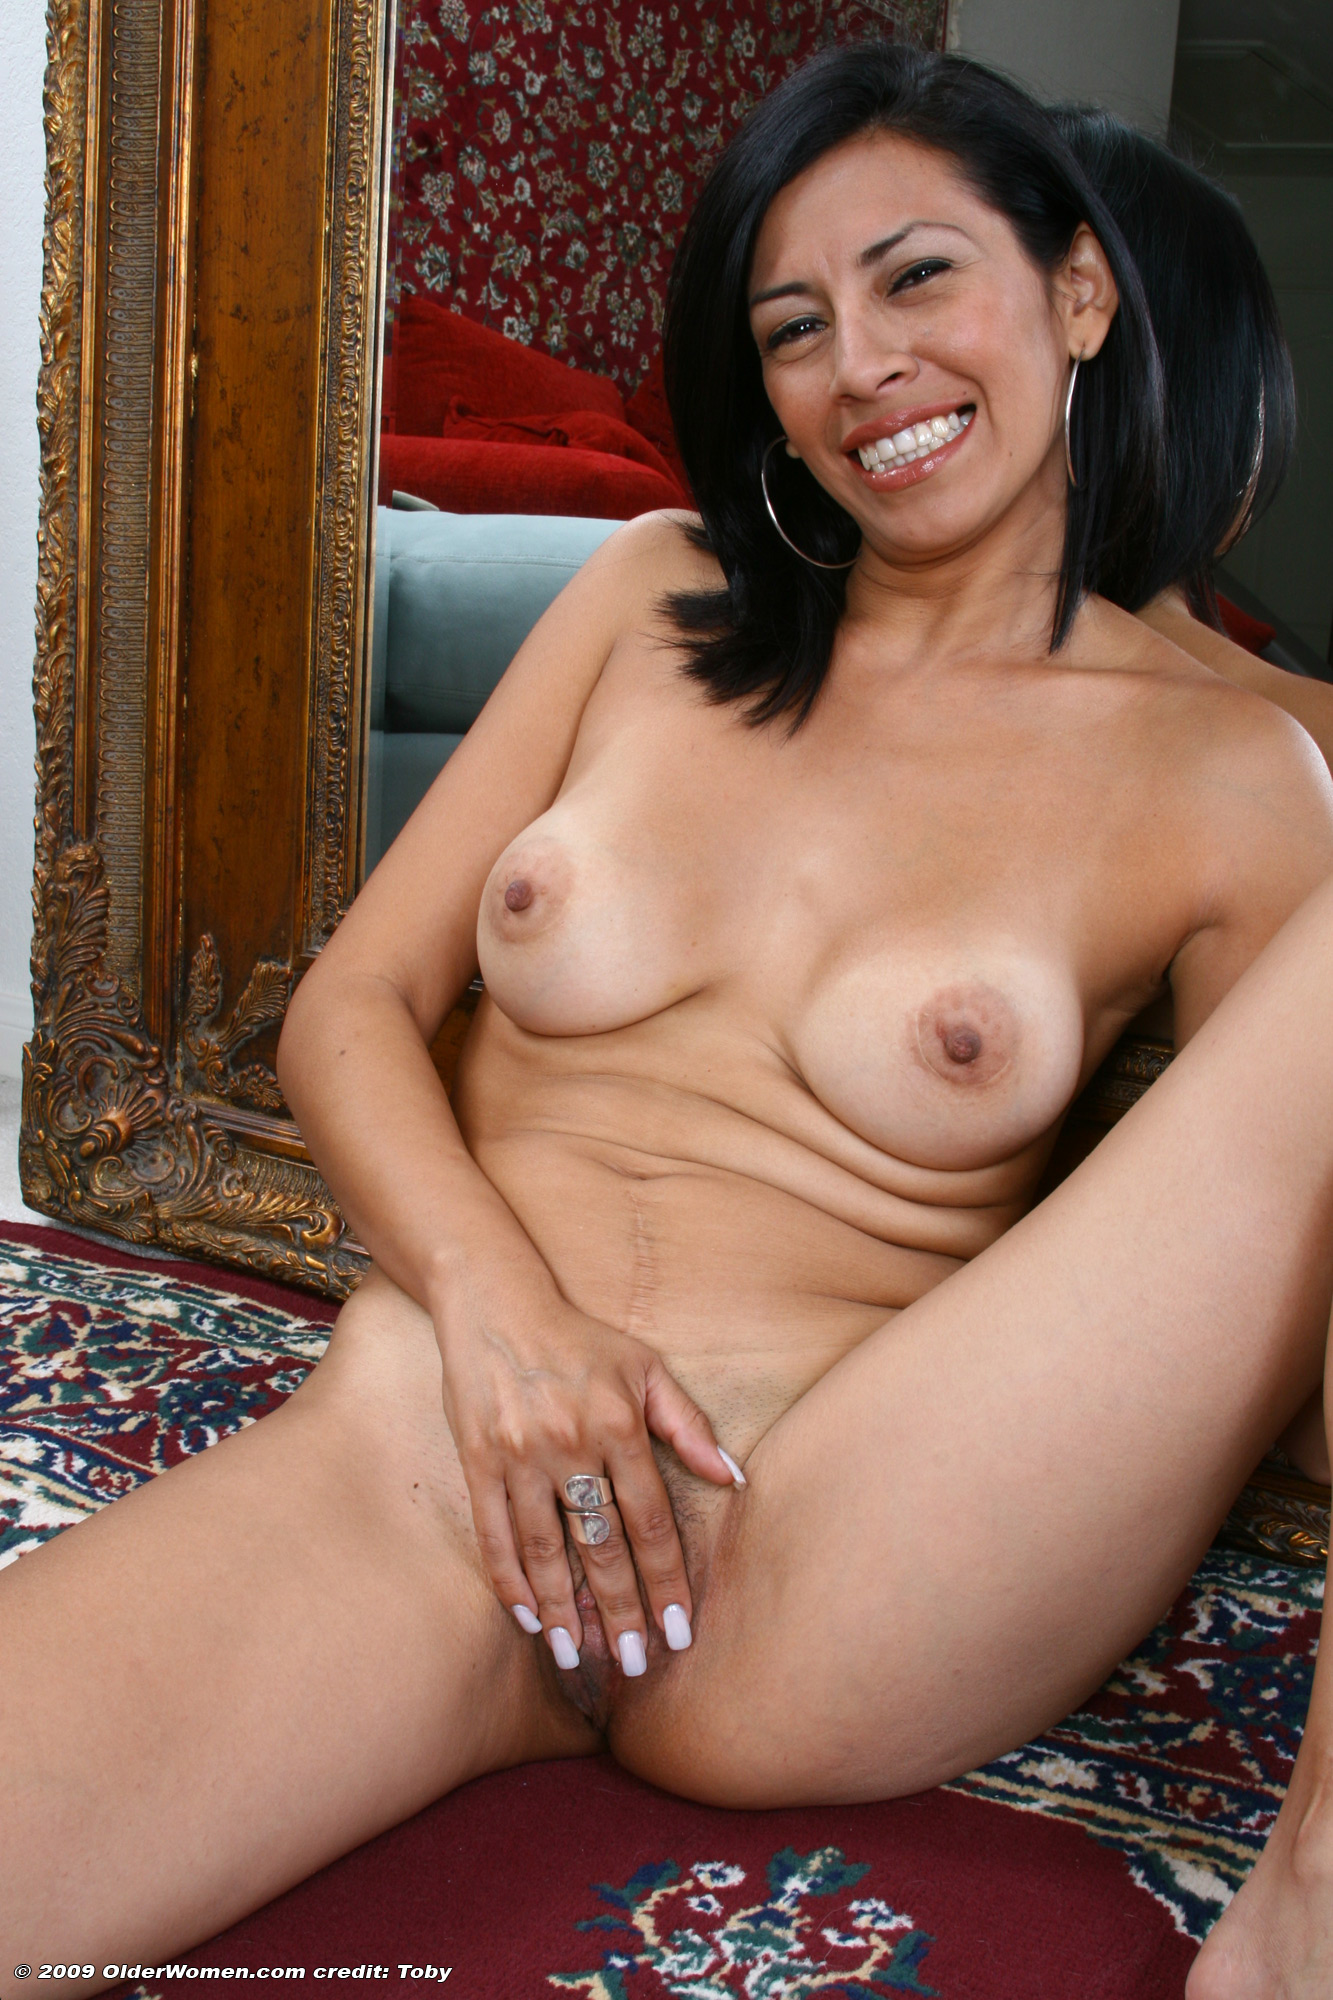 Mature Older Women Porn Pictures